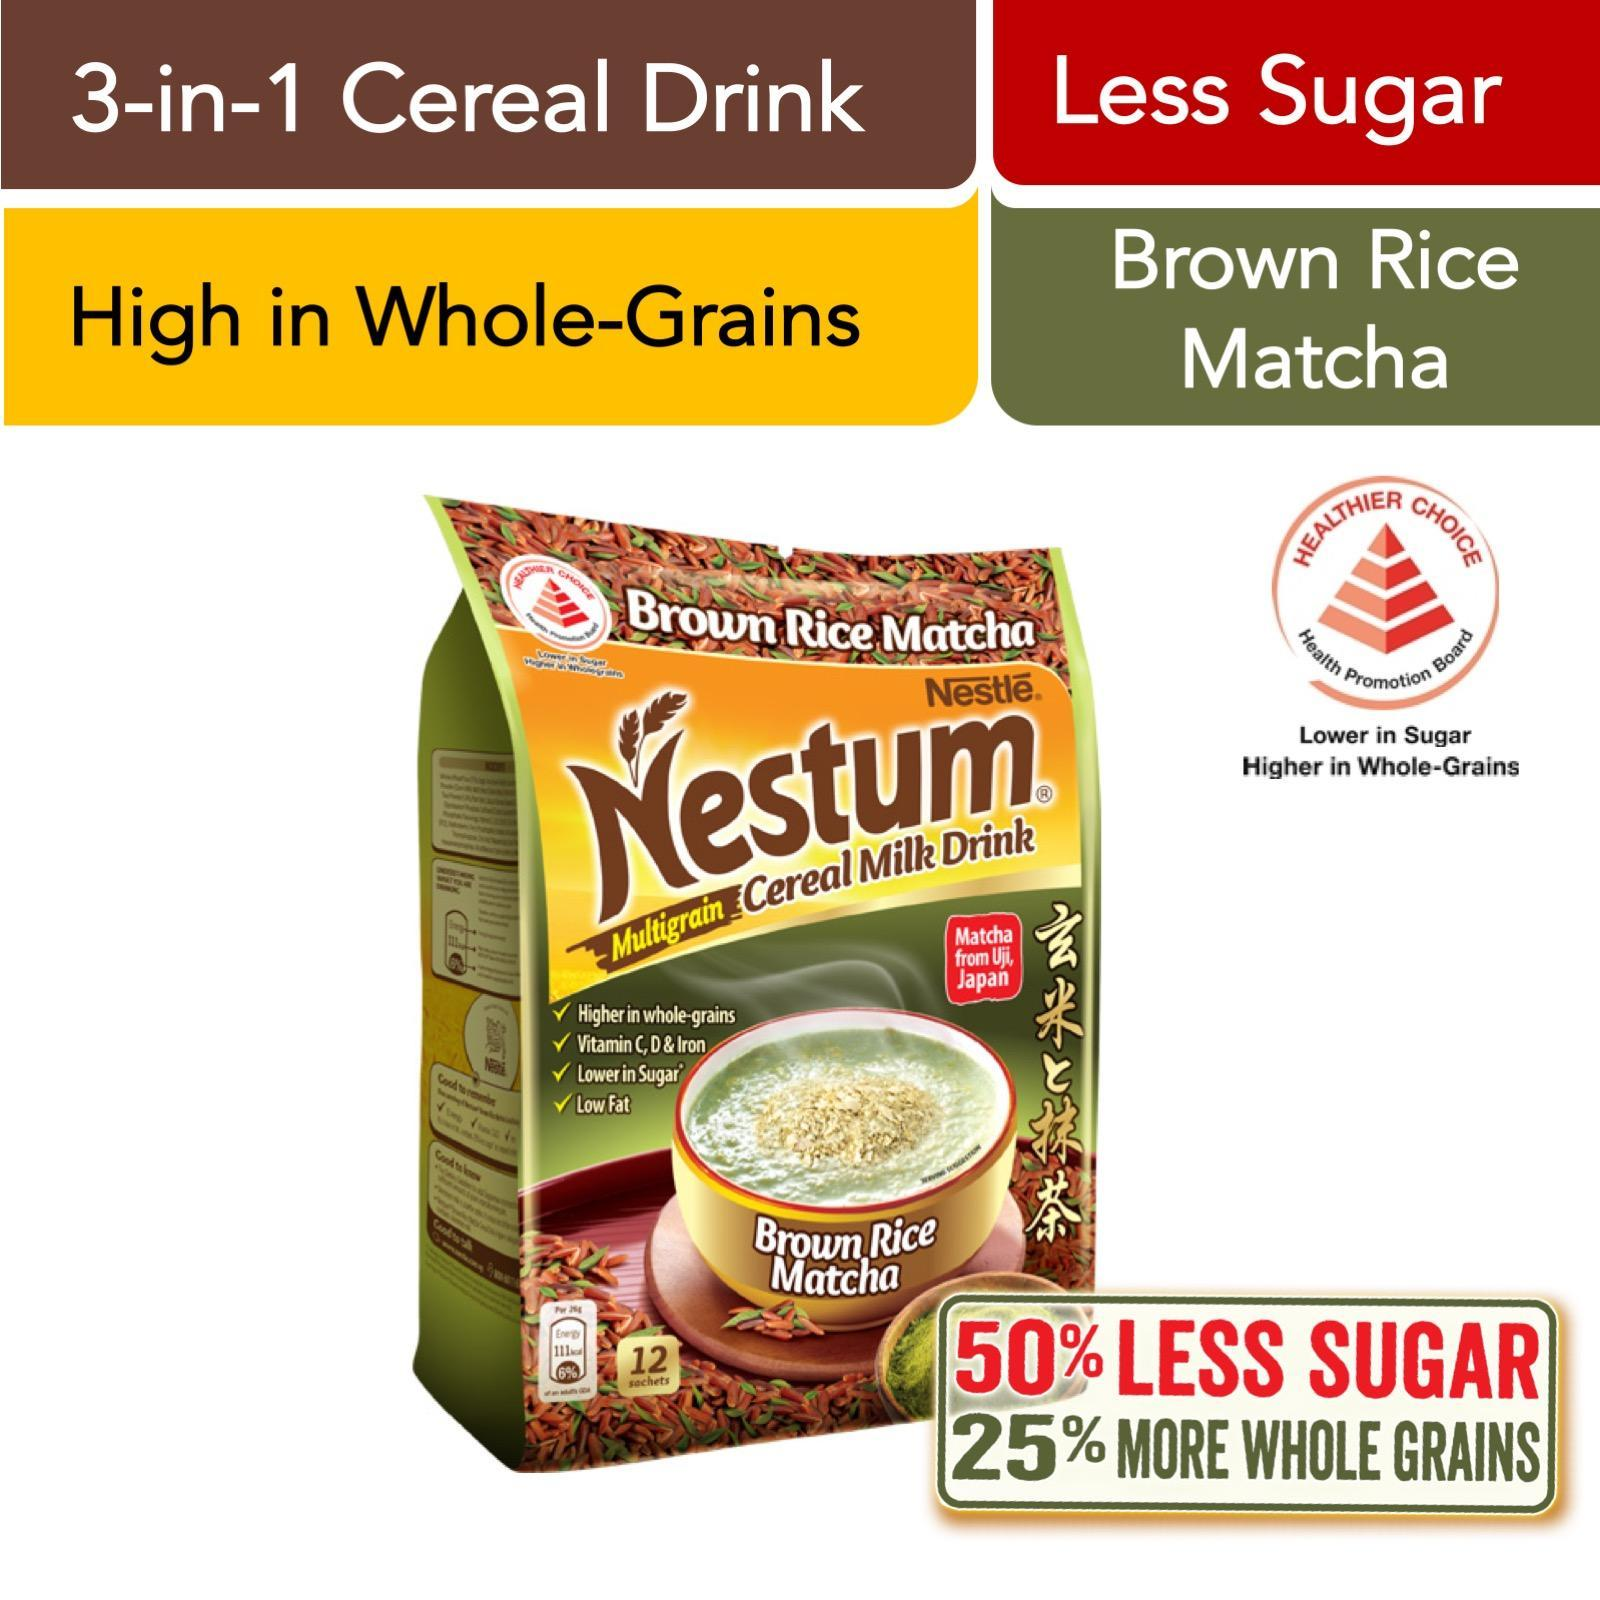 Nestum 3in1 Cereal Drink Brown Rice Matcha 12 X 26g By Redmart